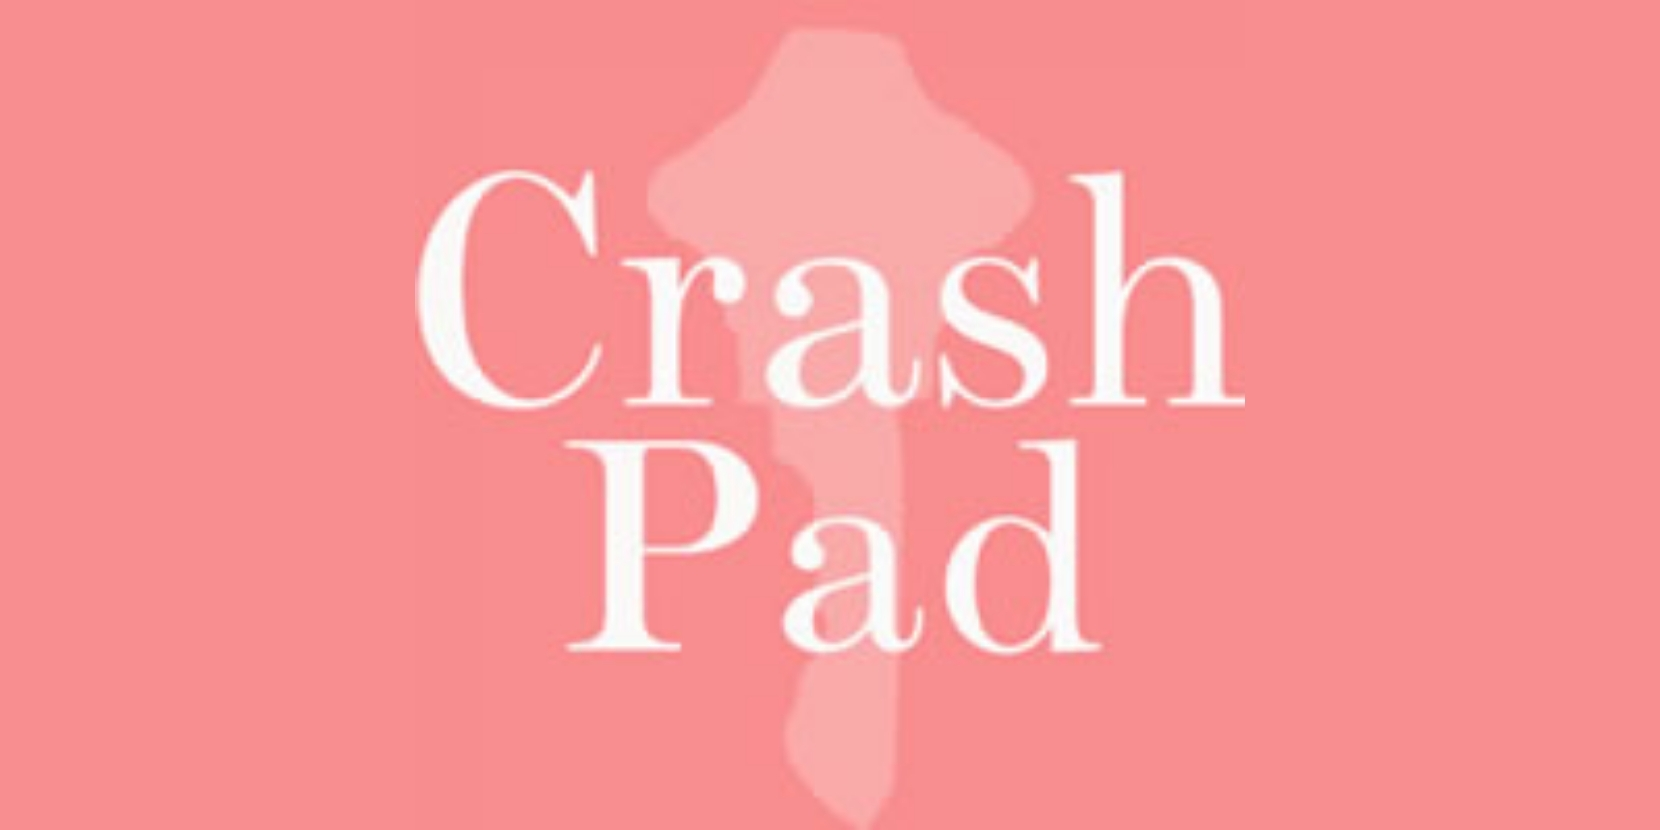 """The silhouette of a light pink key is pictured in front of a darker pink background. The image reads """"Crash Pad"""" in white letters."""